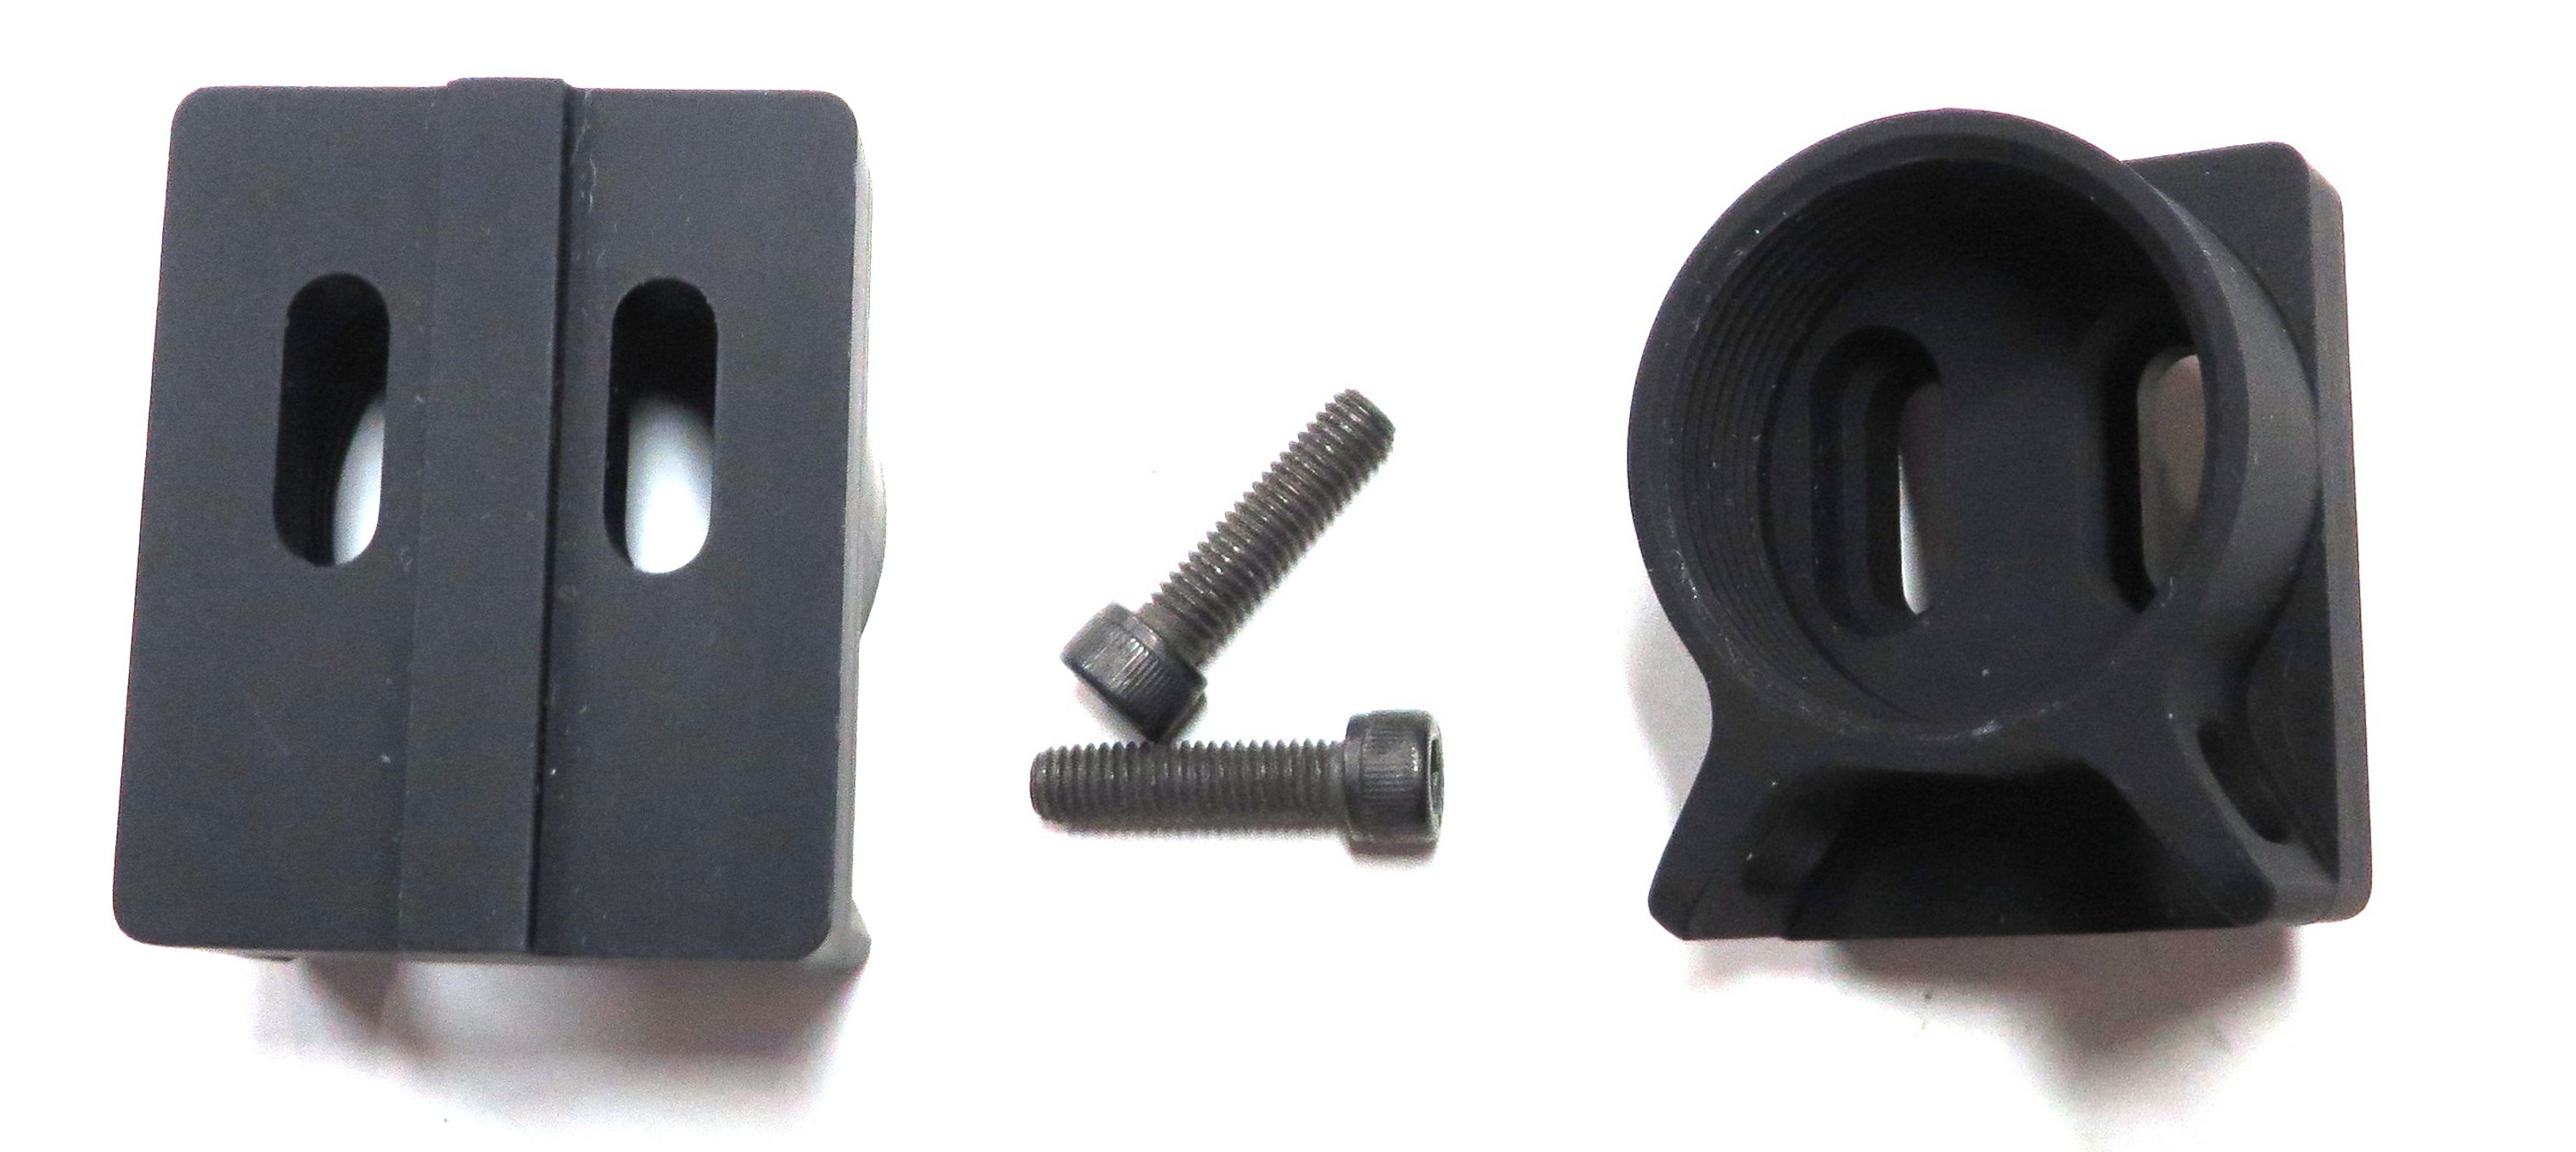 Adjustable AR15/M4 Butt Stock Adapter for use with ACE type